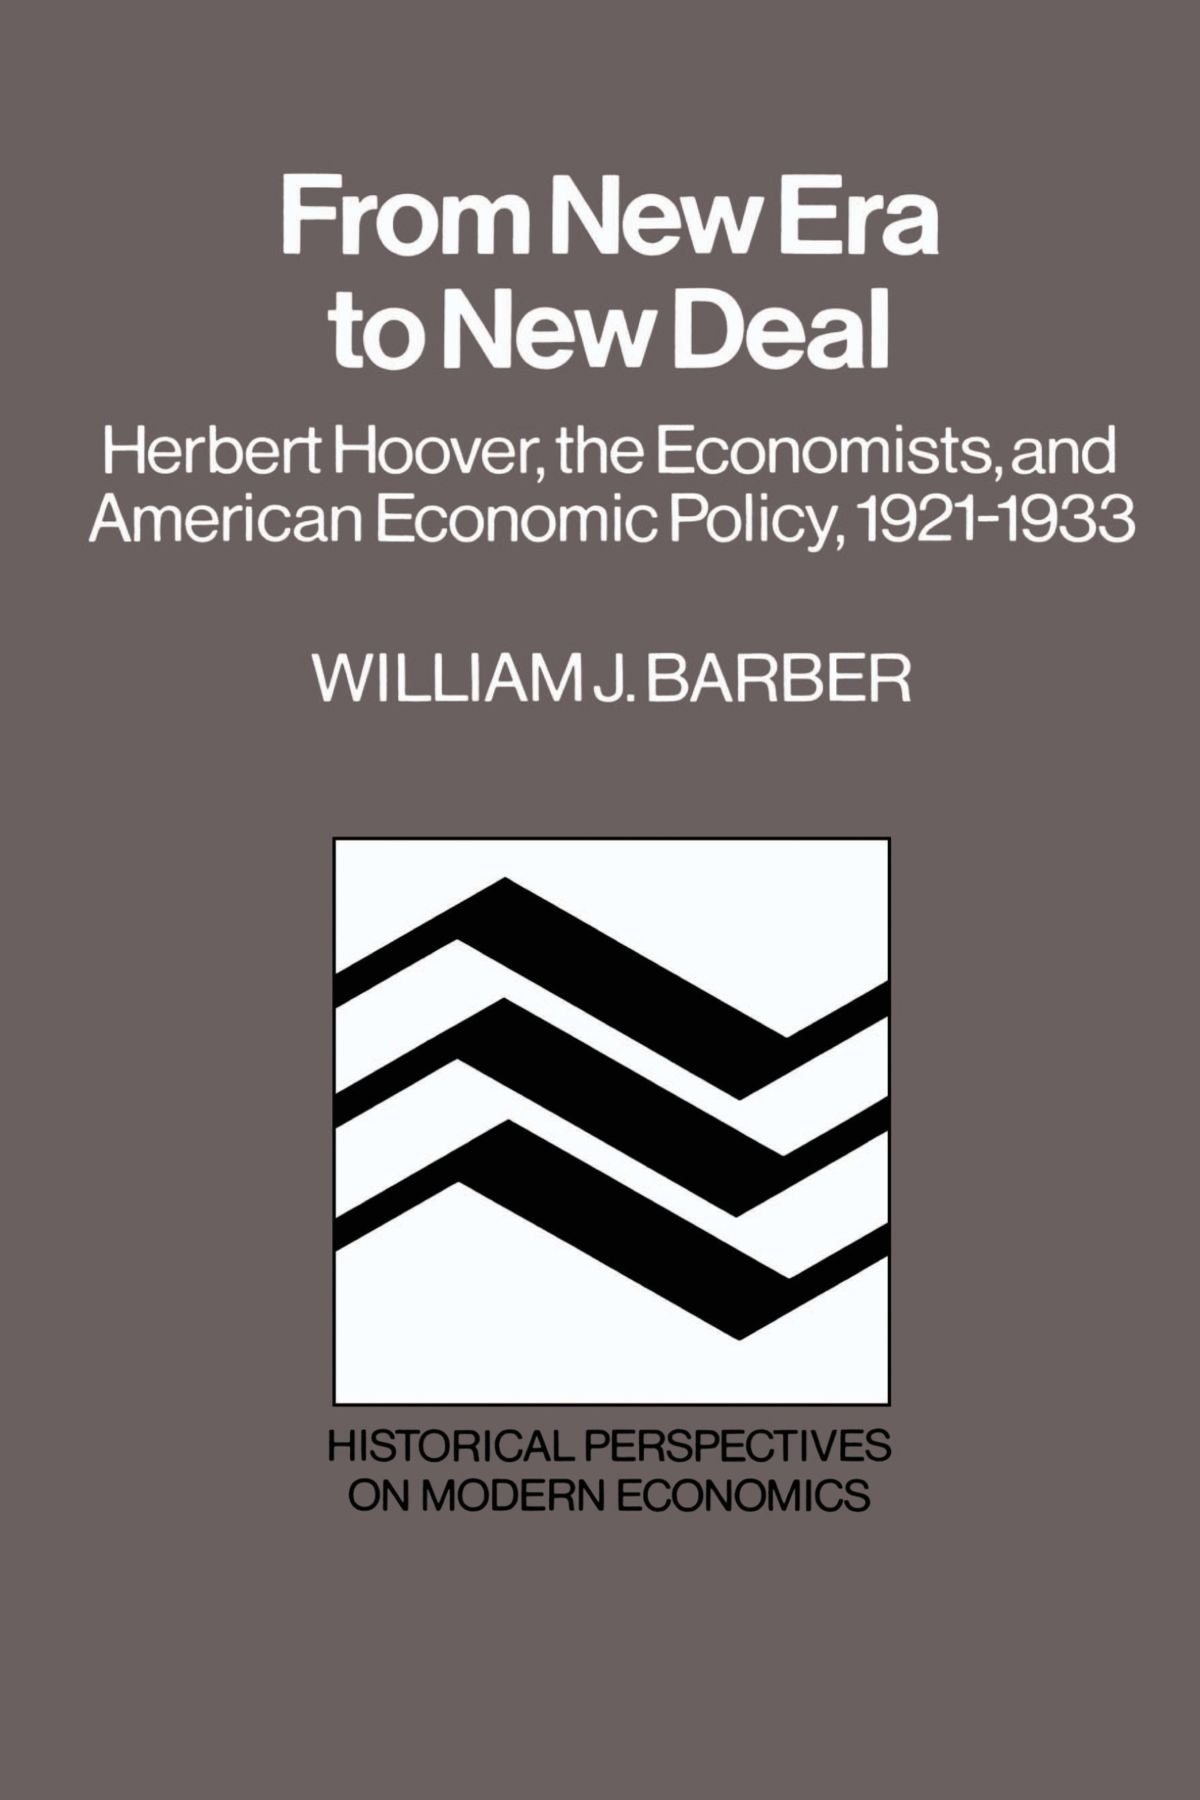 Download From New Era to New Deal: Herbert Hoover, the Economists, and American Economic Policy, 1921-1933 (Historical Perspectives on Modern Economics) pdf